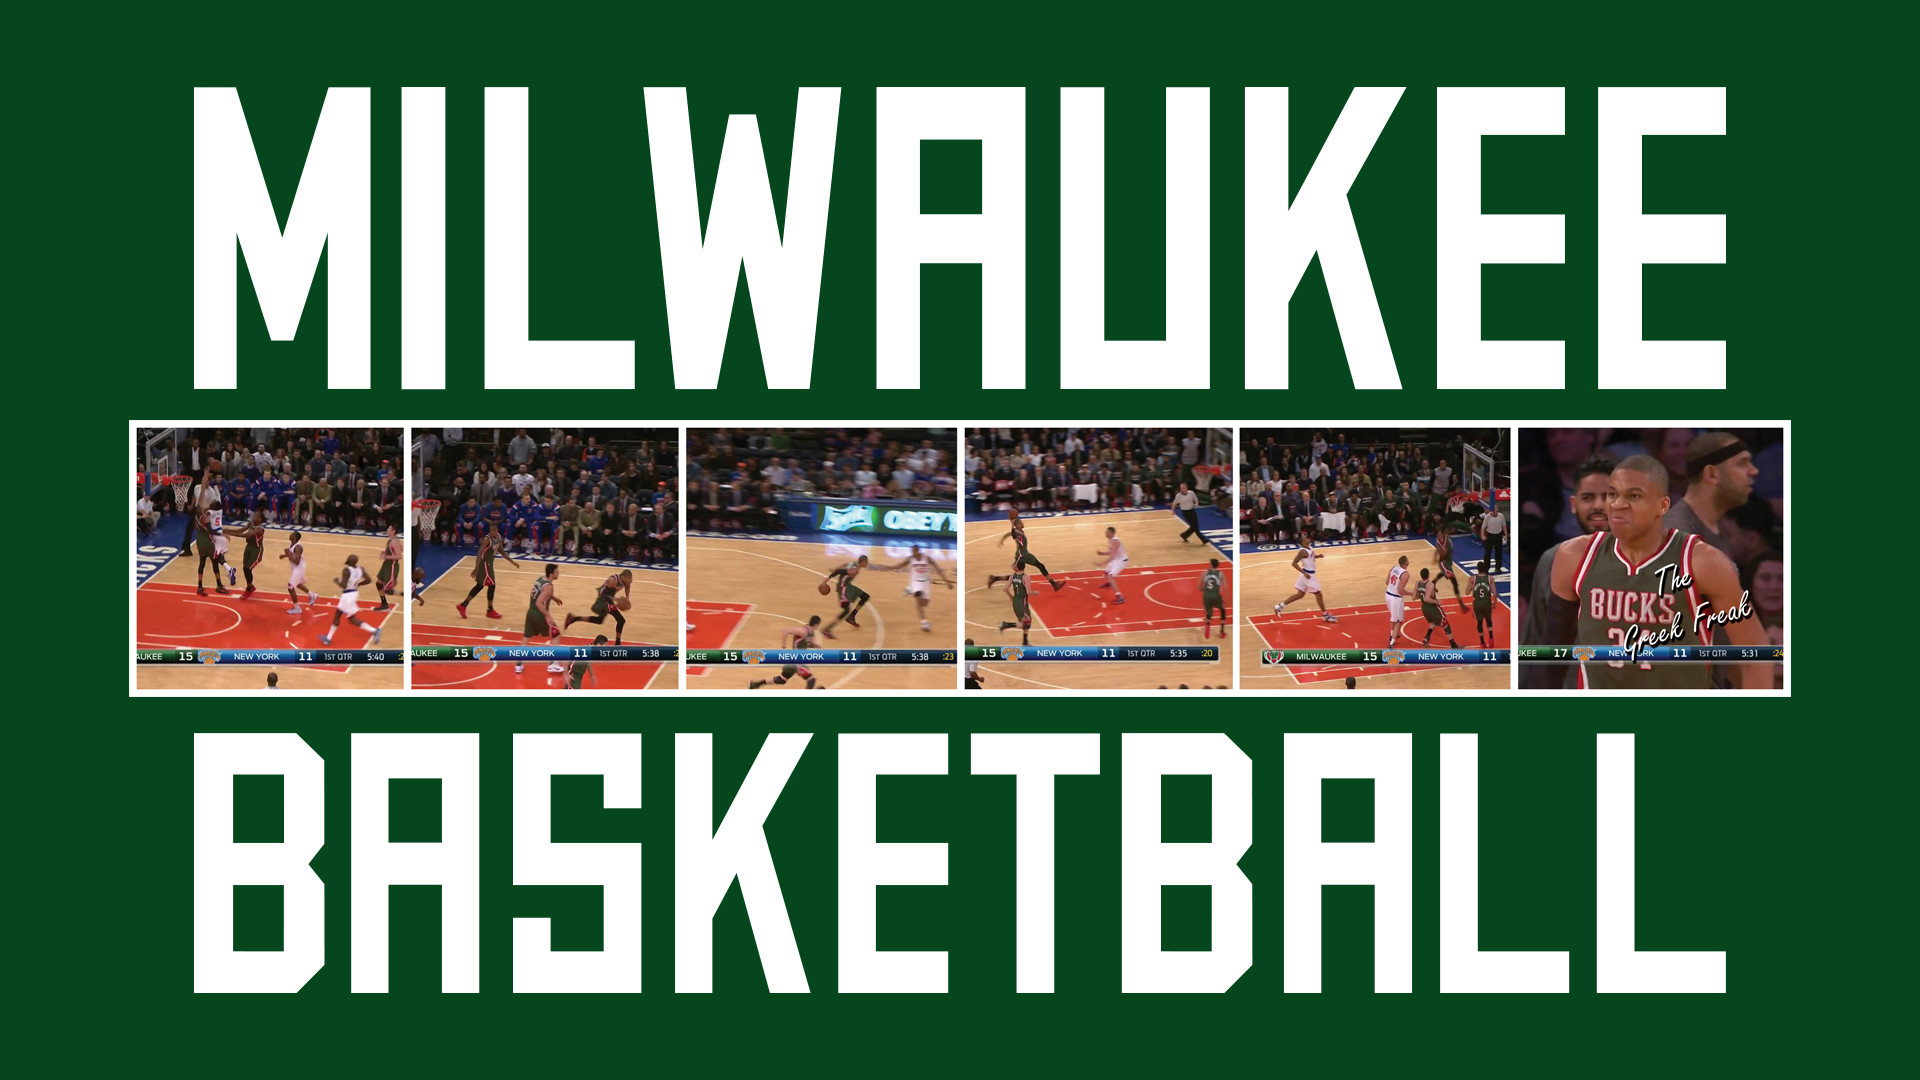 1920x1080 Milwaukee Bucks Basketball [wallpaper]